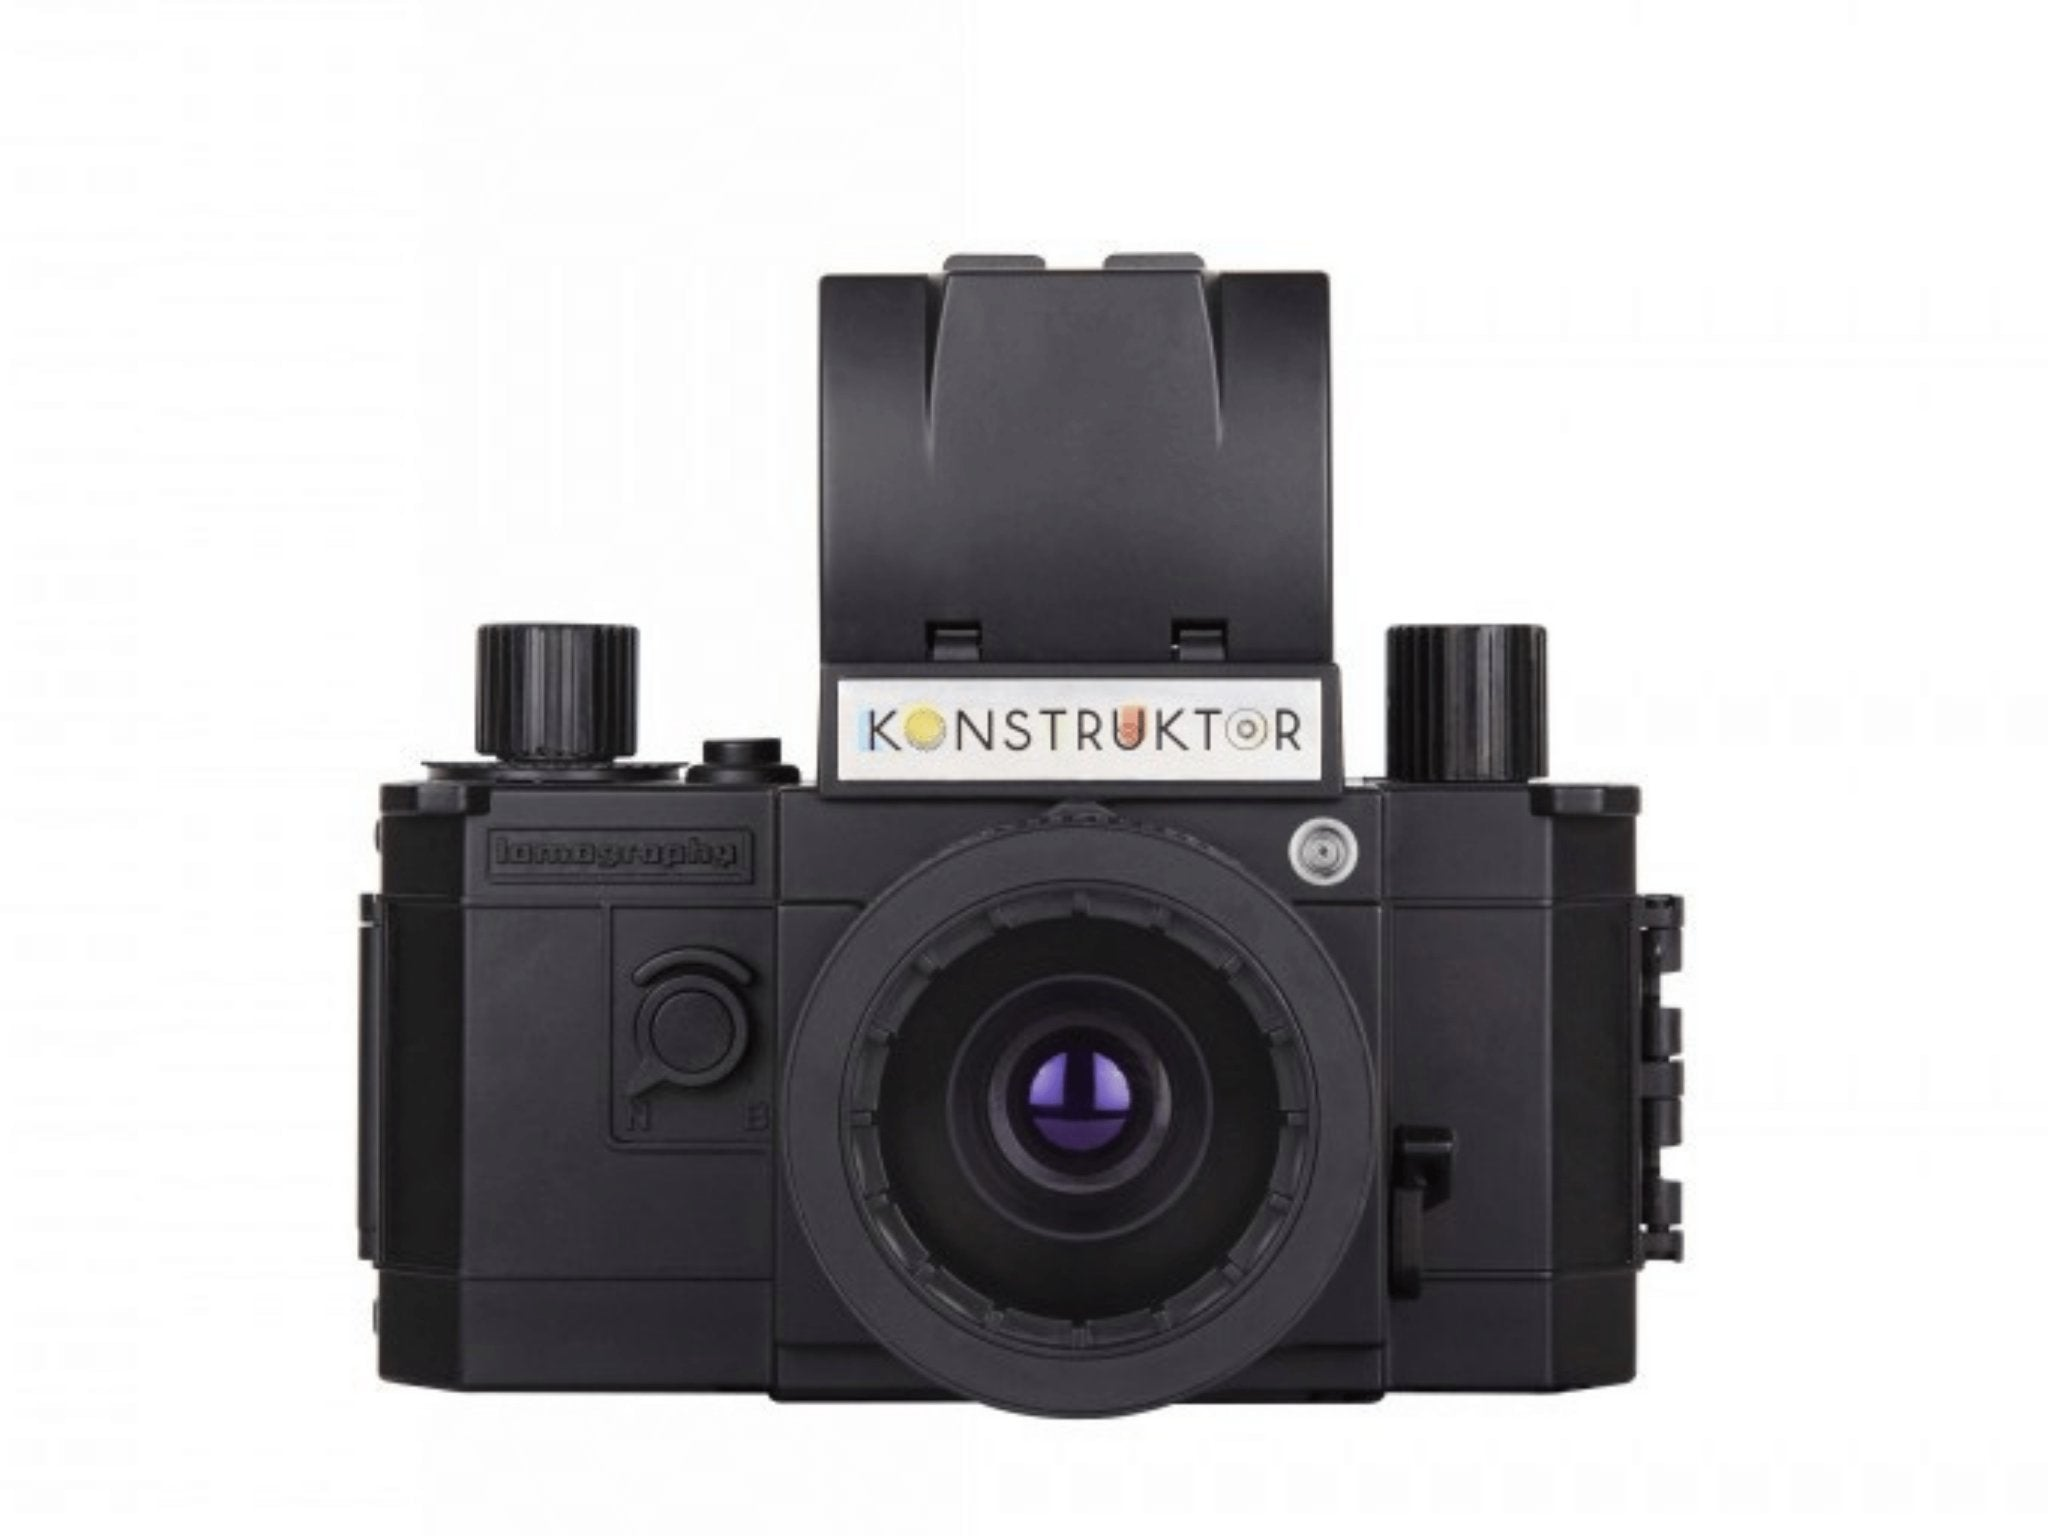 Lomography Konstruktor F - 35mm Film Camera - Analogue Wonderland